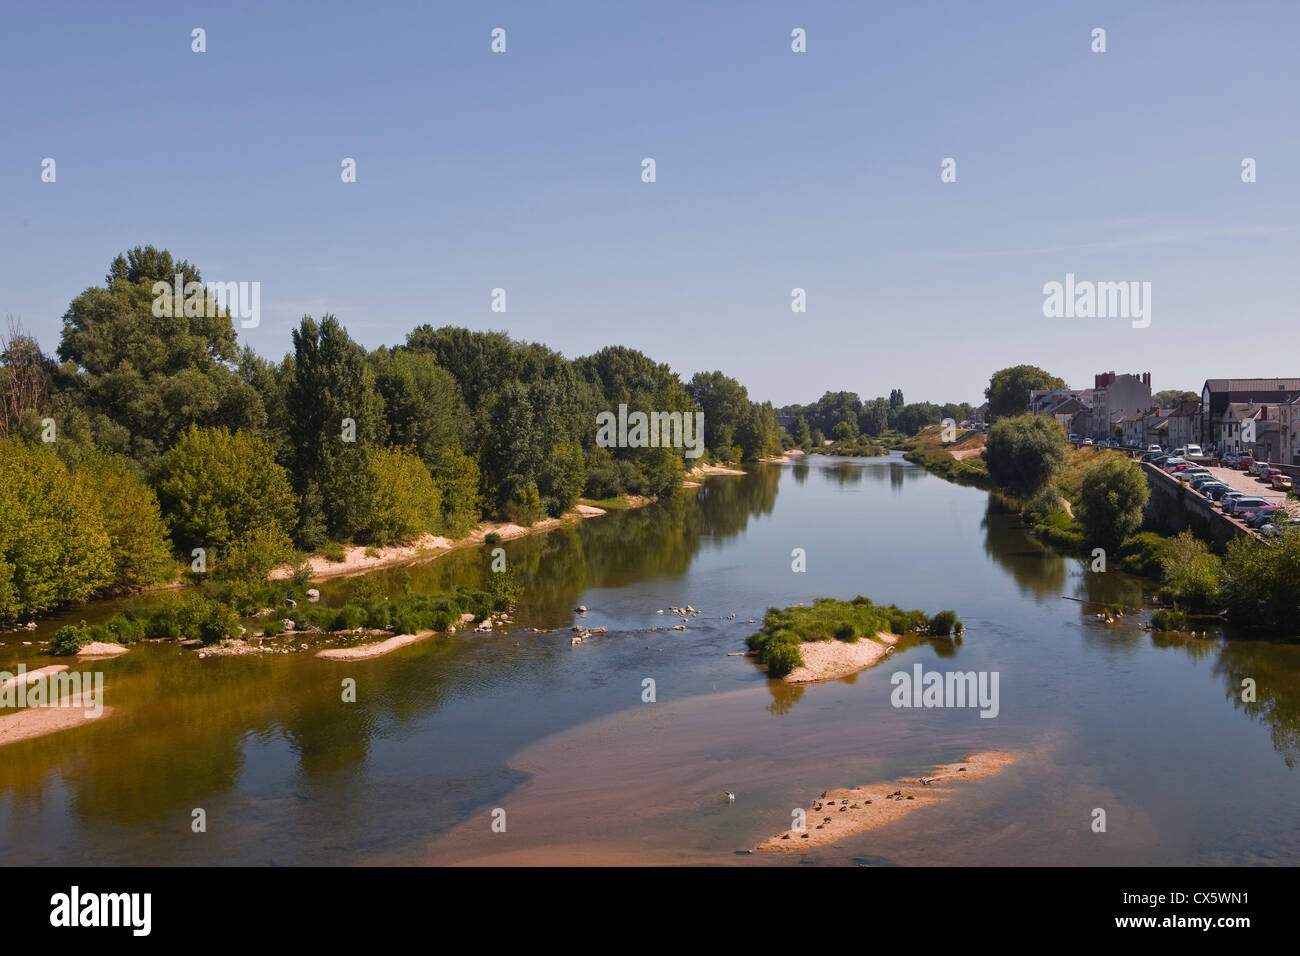 Looking down the river Loire in the city of orleans in France. - Stock Image